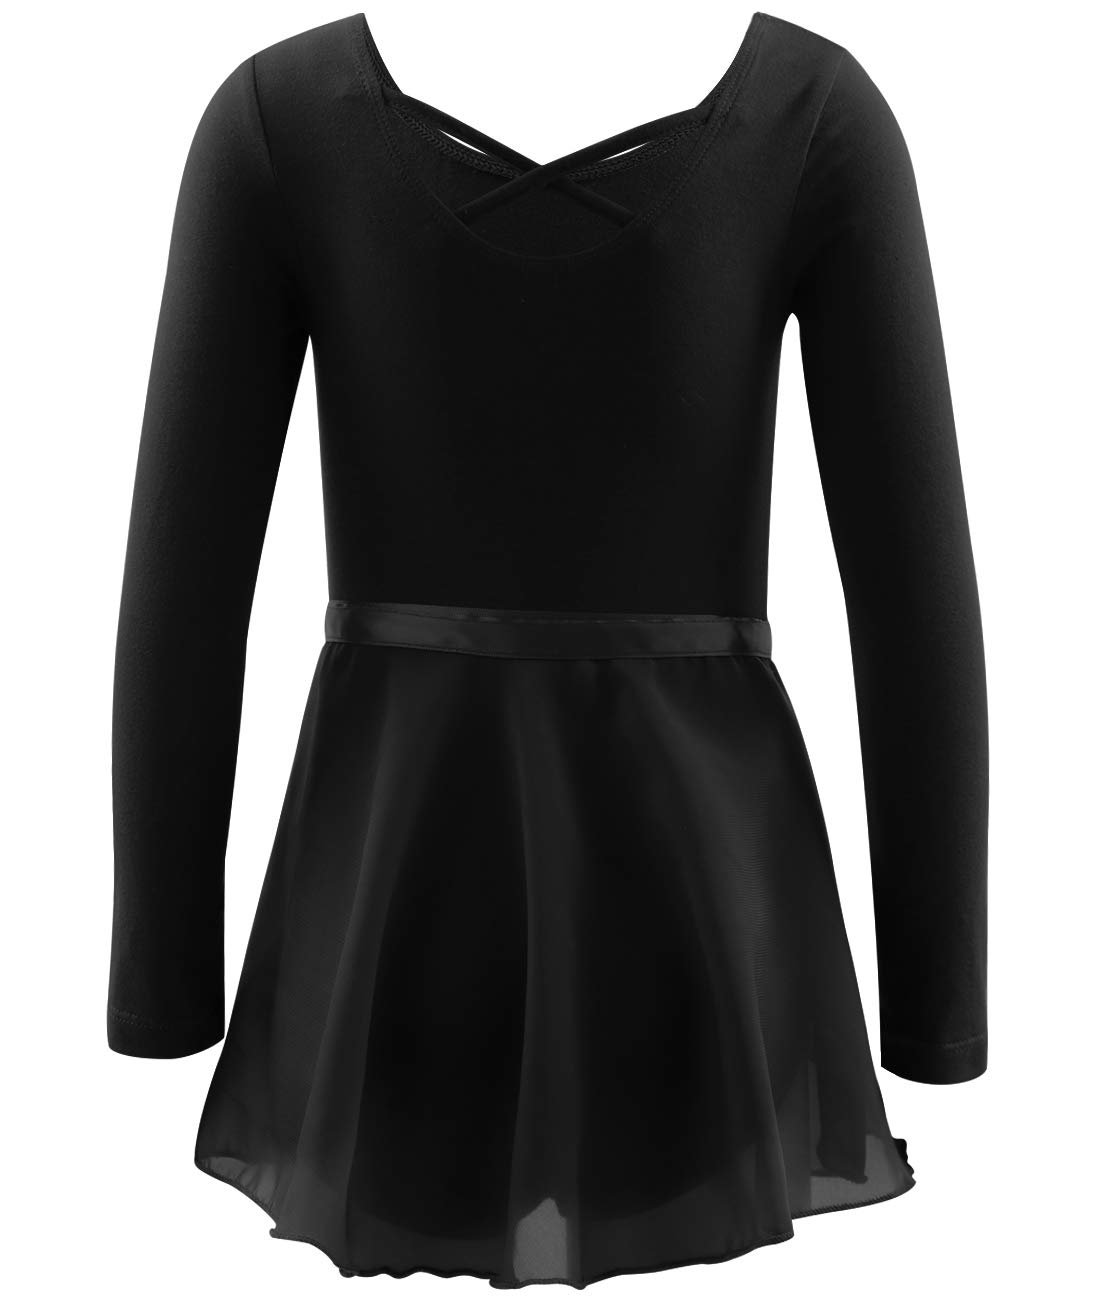 BhzHJ Girls Leotards for Dance//Ballet//Gymnastics Long Sleeve with Separate Chiffon Skirt Multiple Colors